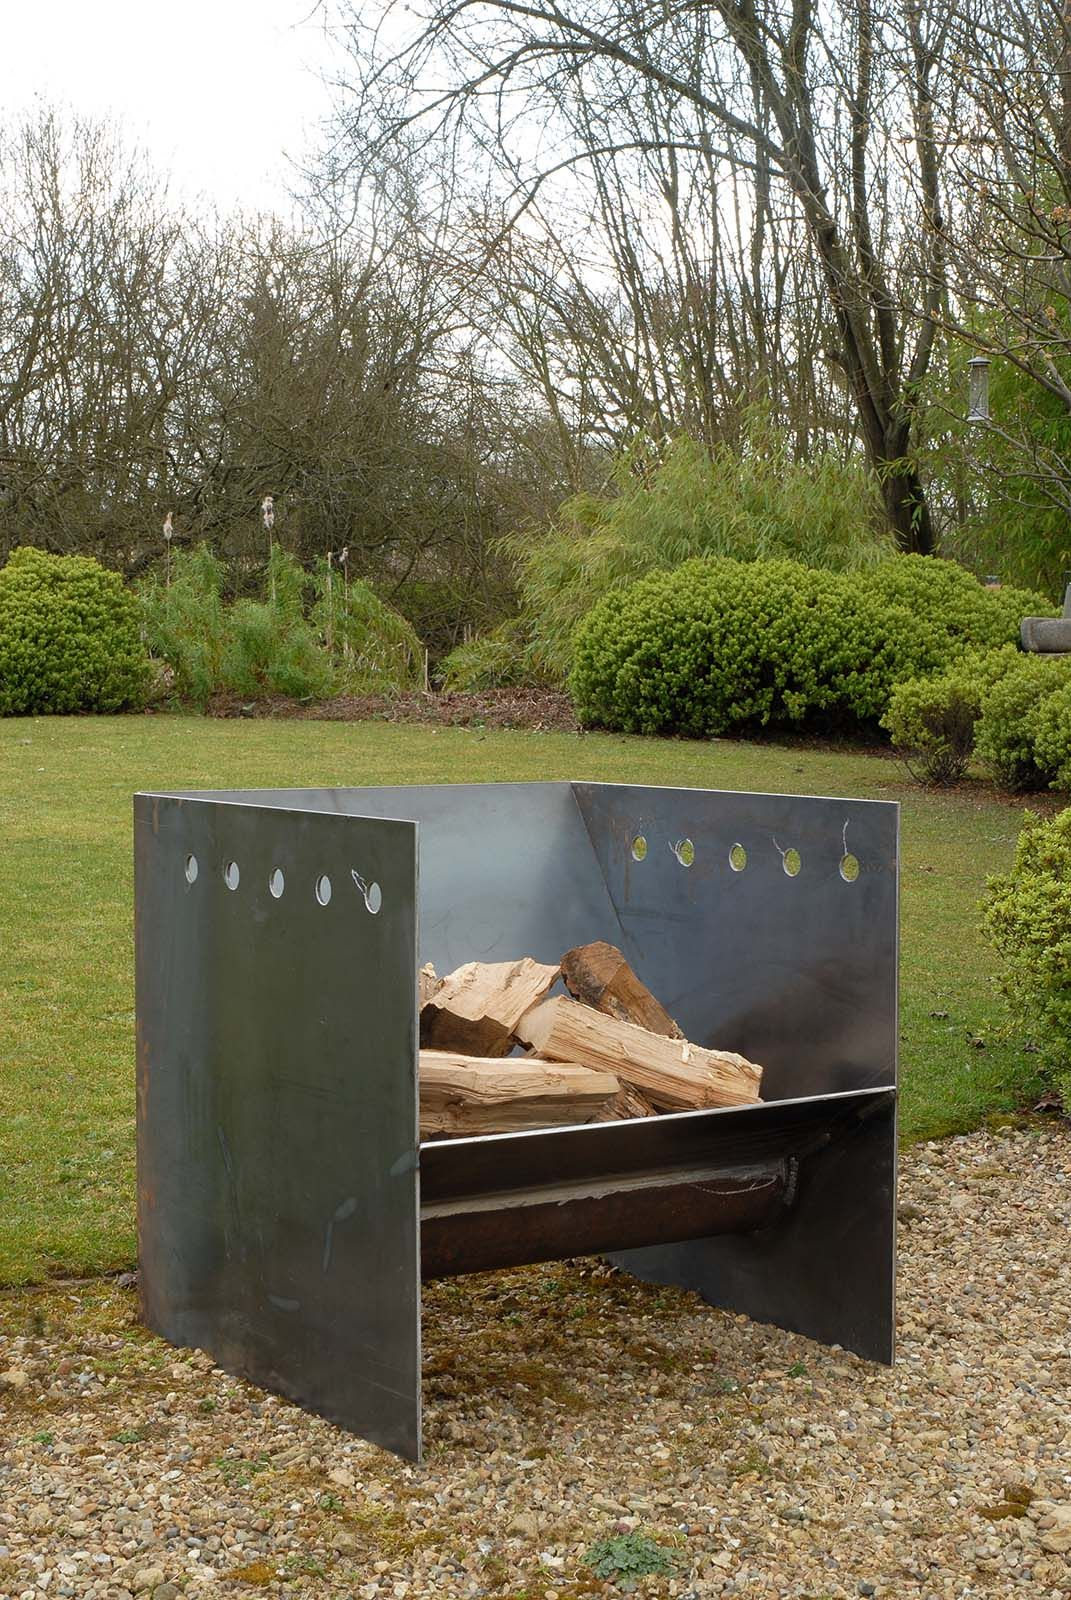 Diy Fire Pit Designs Ideas Do You Want To Know How Build A Outdoor Plans Warm Your Autumn Outside Pits